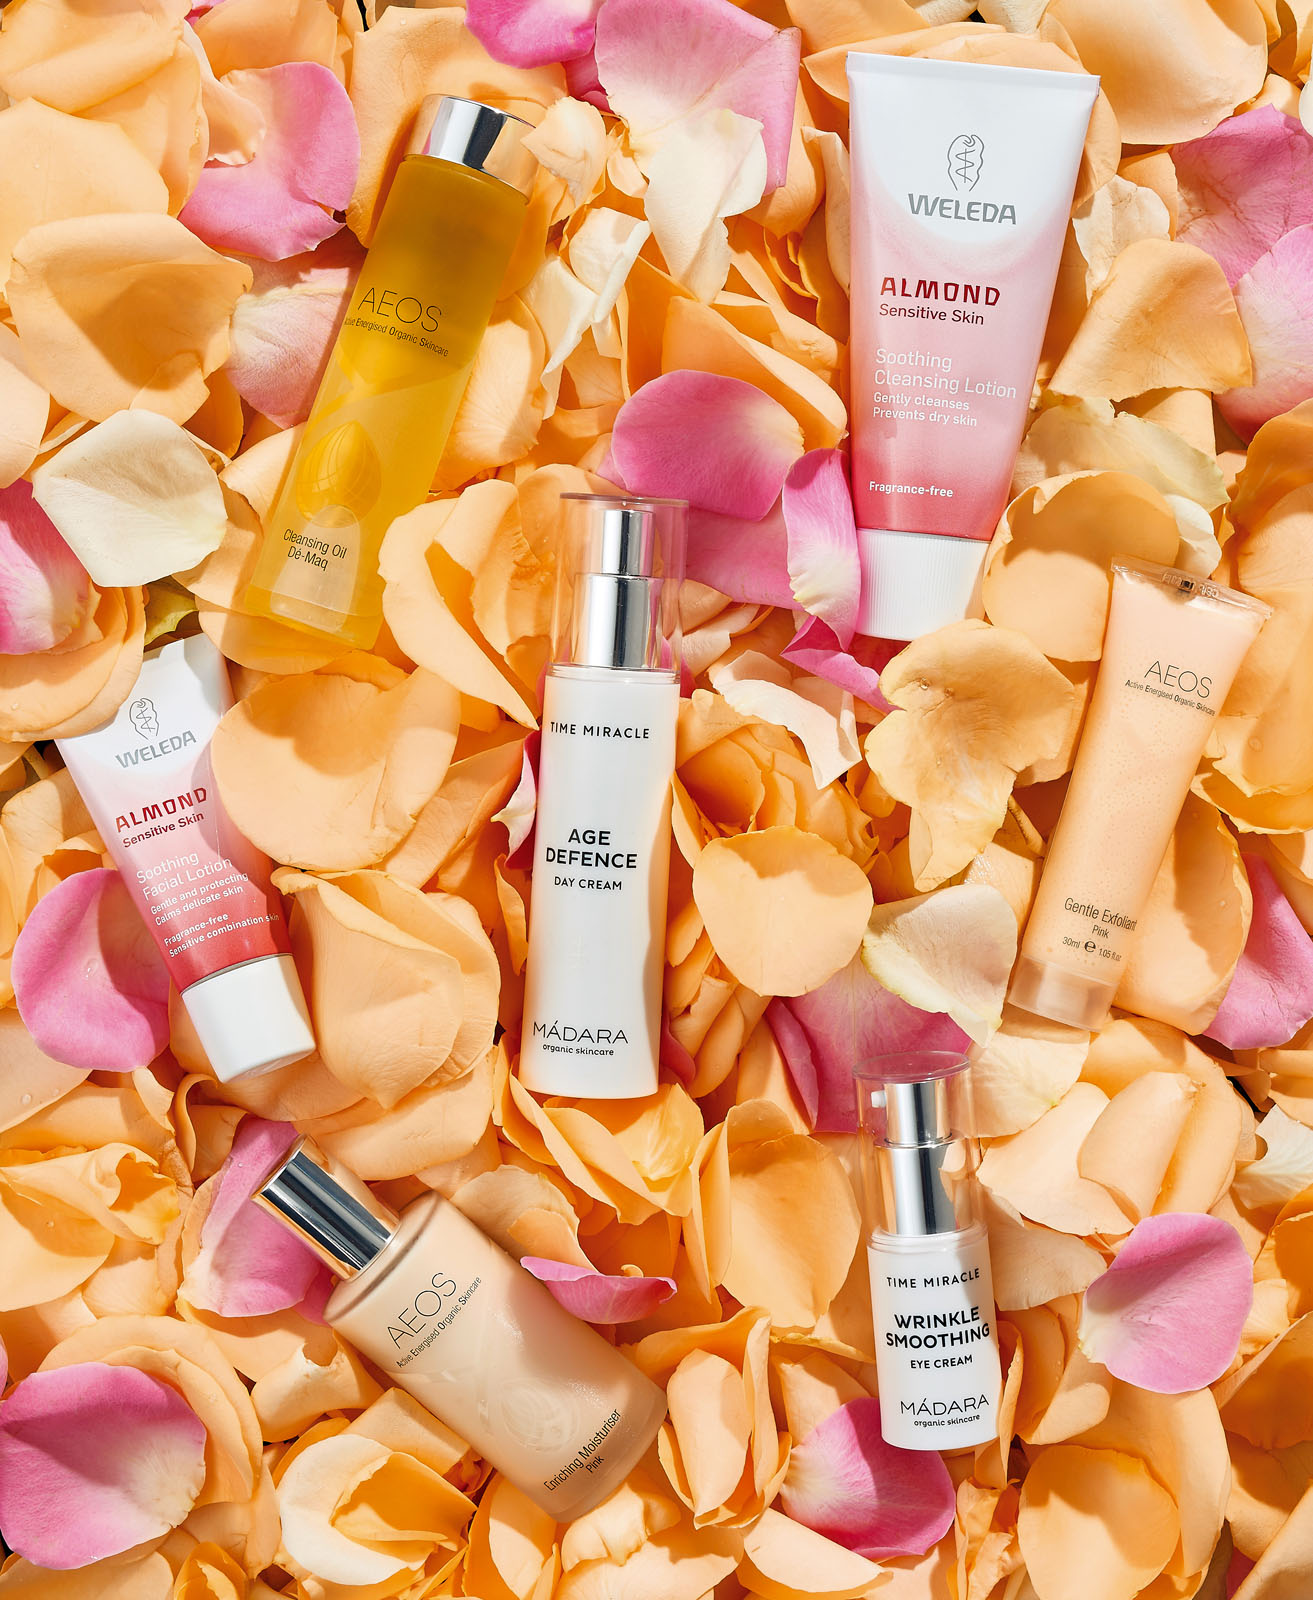 Beauty products photographed on rose petals